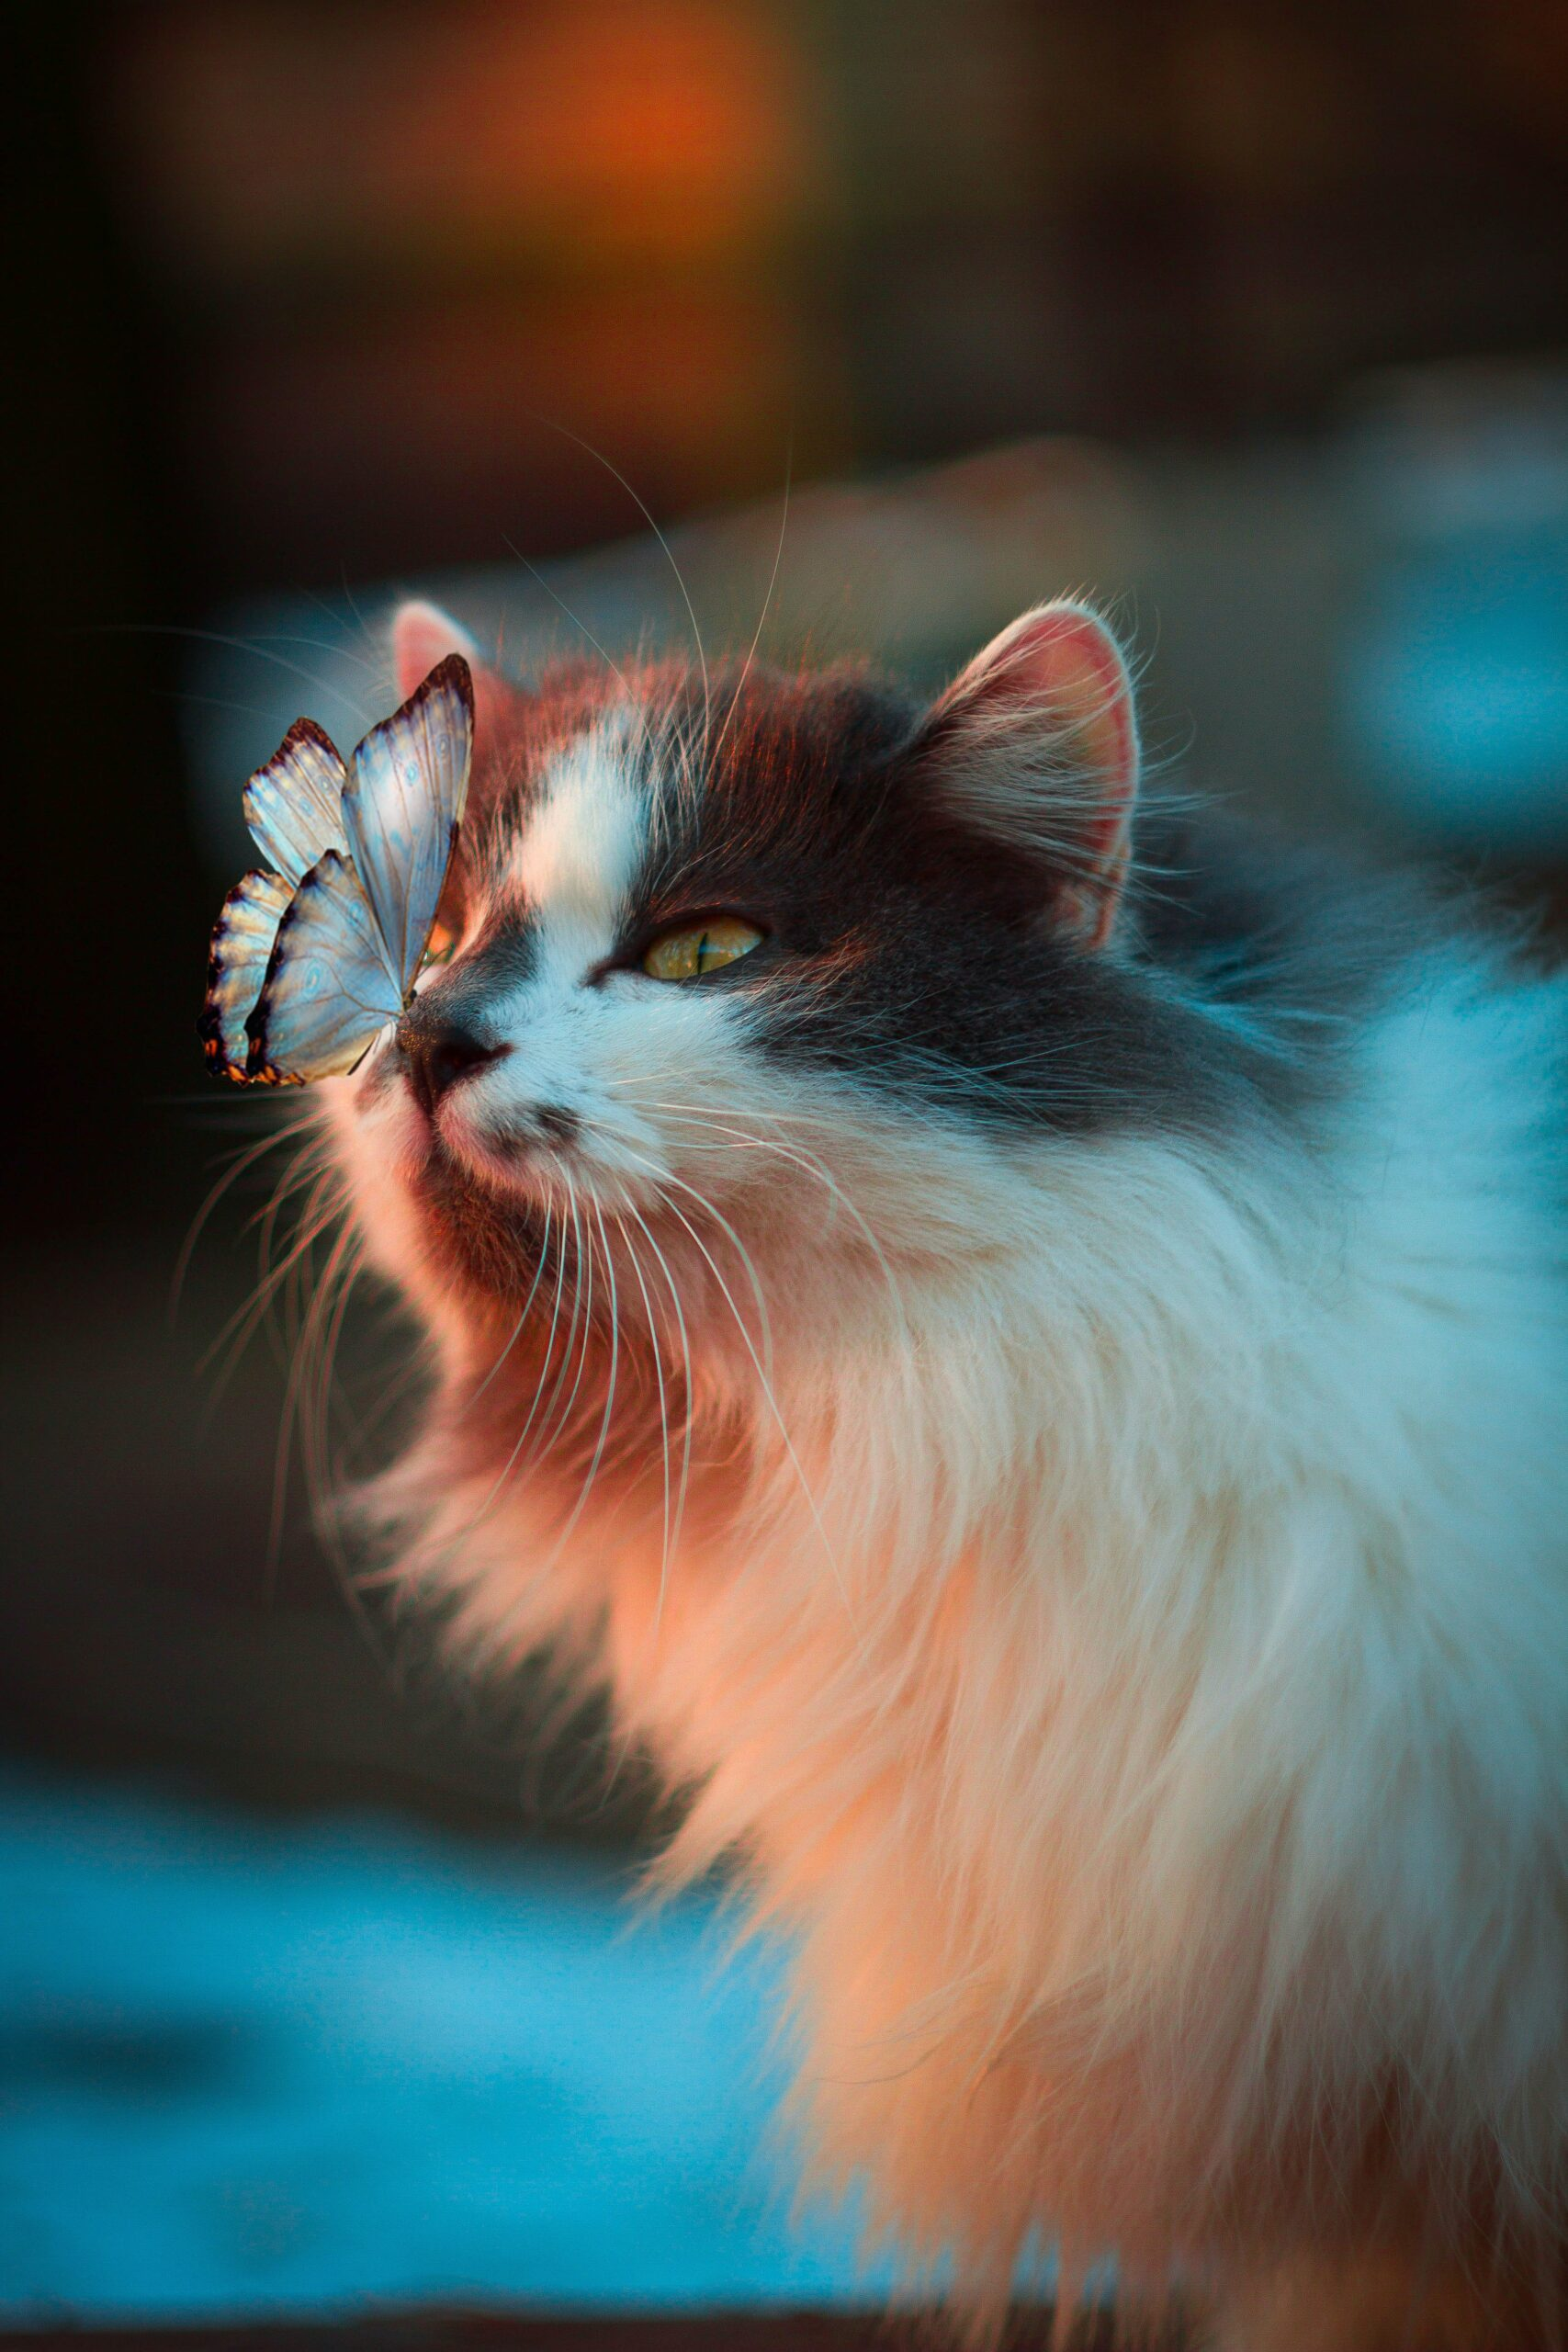 Fluffy cat with Butterfly landing on his nose by Karina Vorozheeva from Unsplash